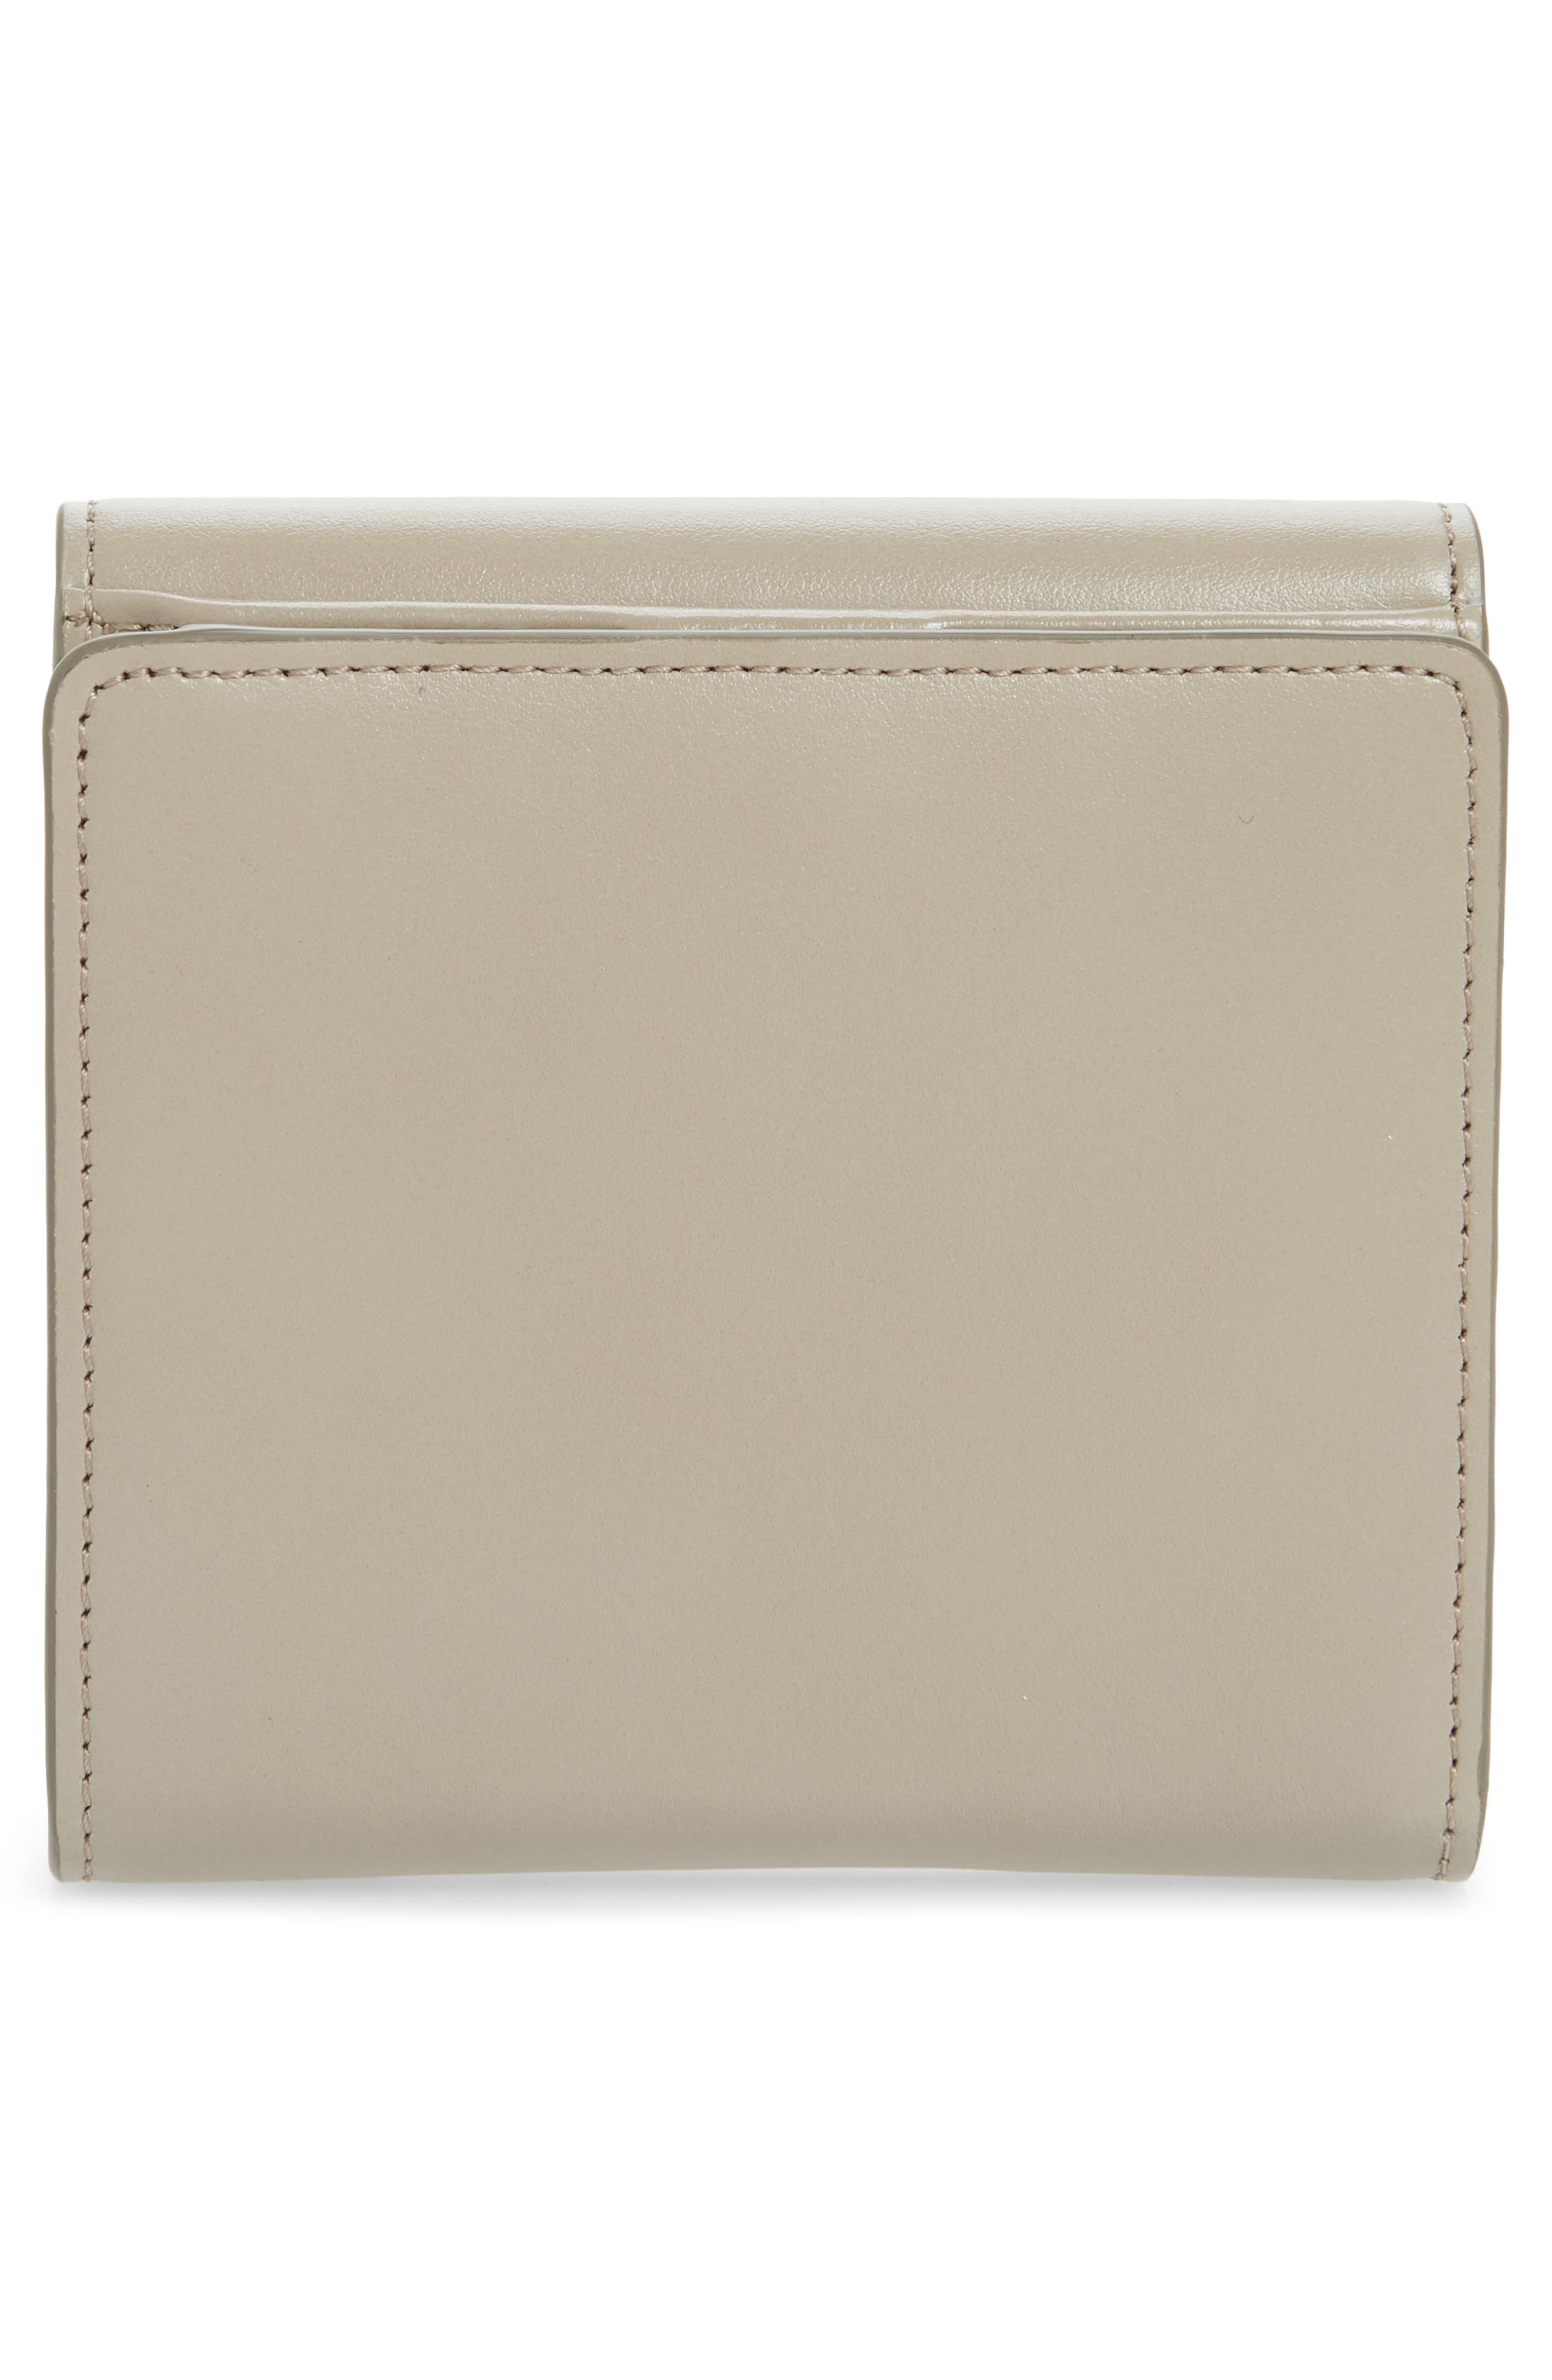 CHLOÉ, Square Leather Wallet, Alternate thumbnail 4, color, MOTTY GREY